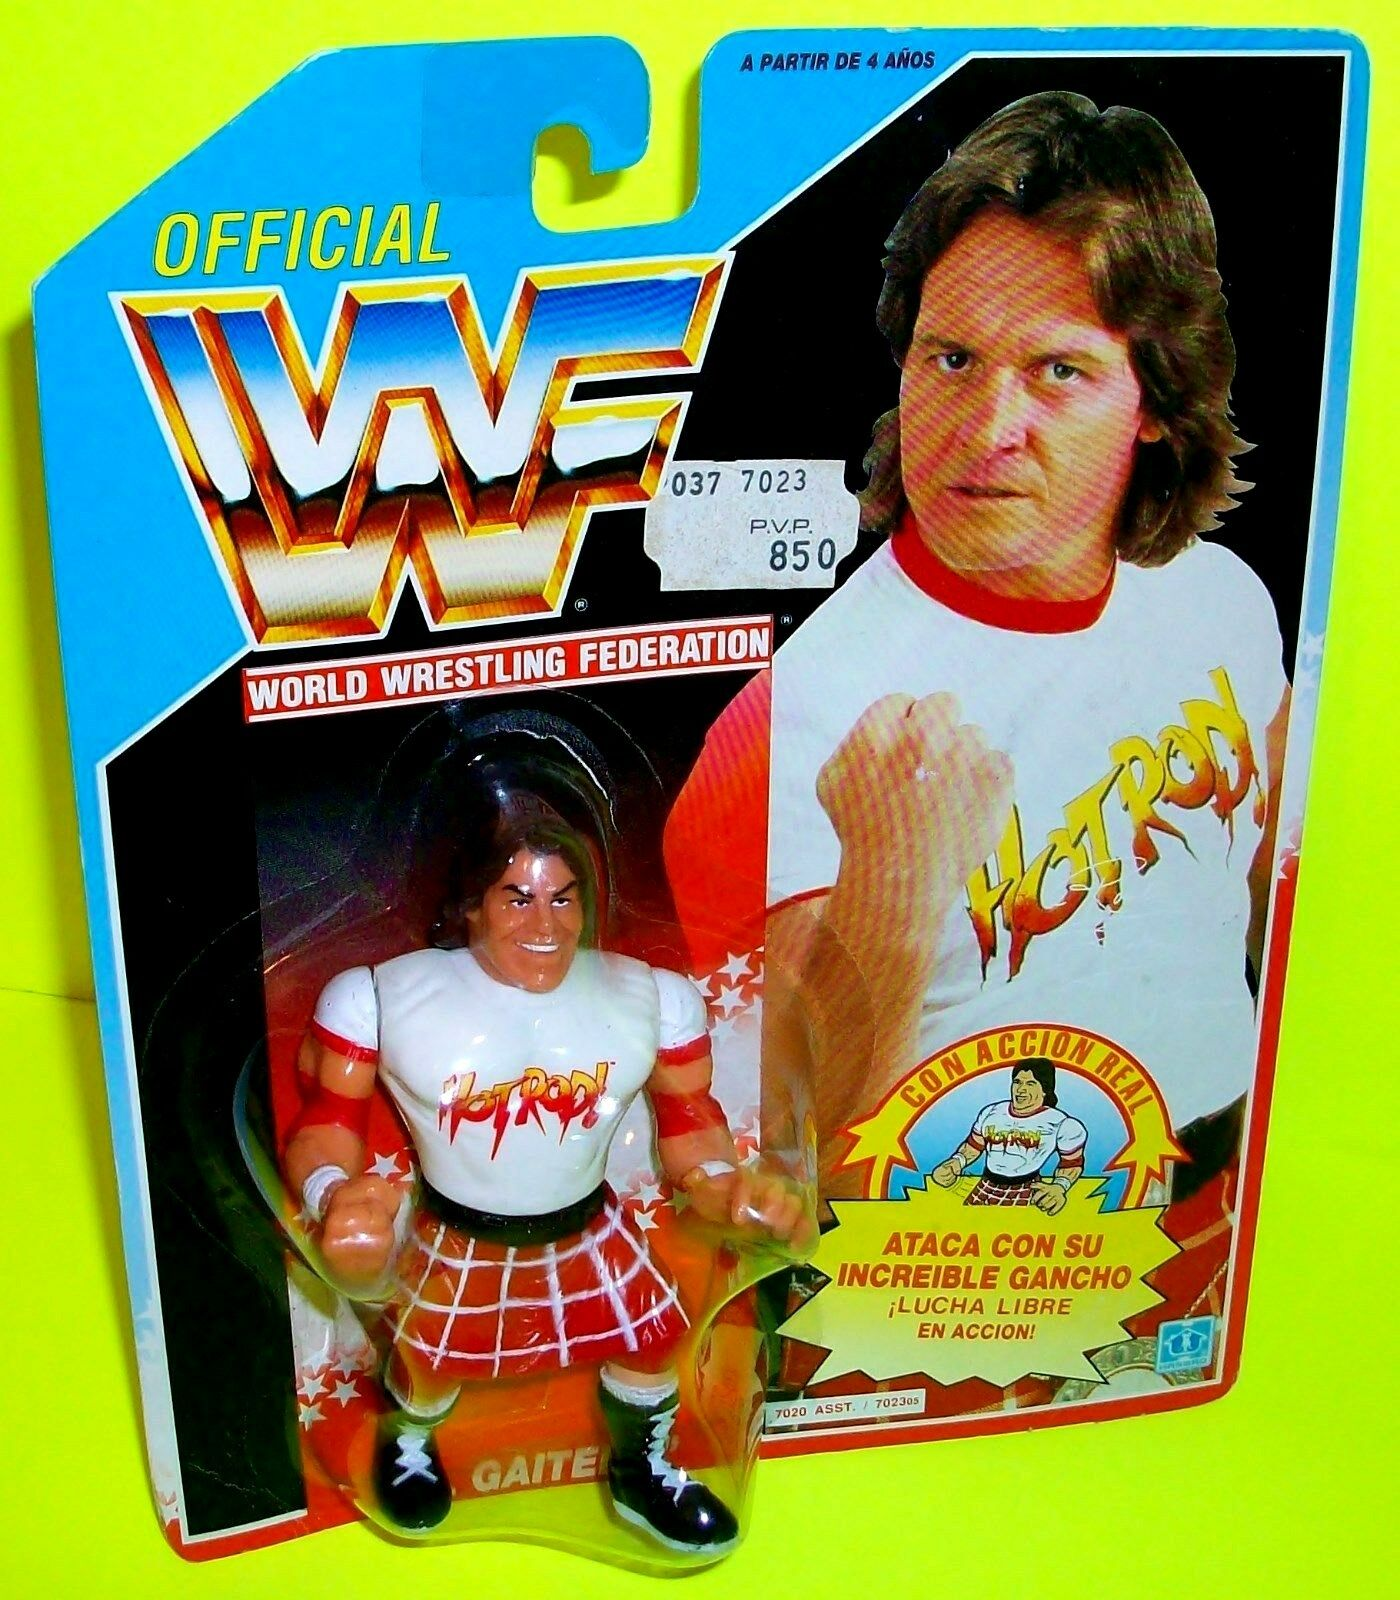 WWE WWF Rowdy RODDY PIPER Hot Rod SummerSlam Vtg Action Figure RARE SPANISH CARD